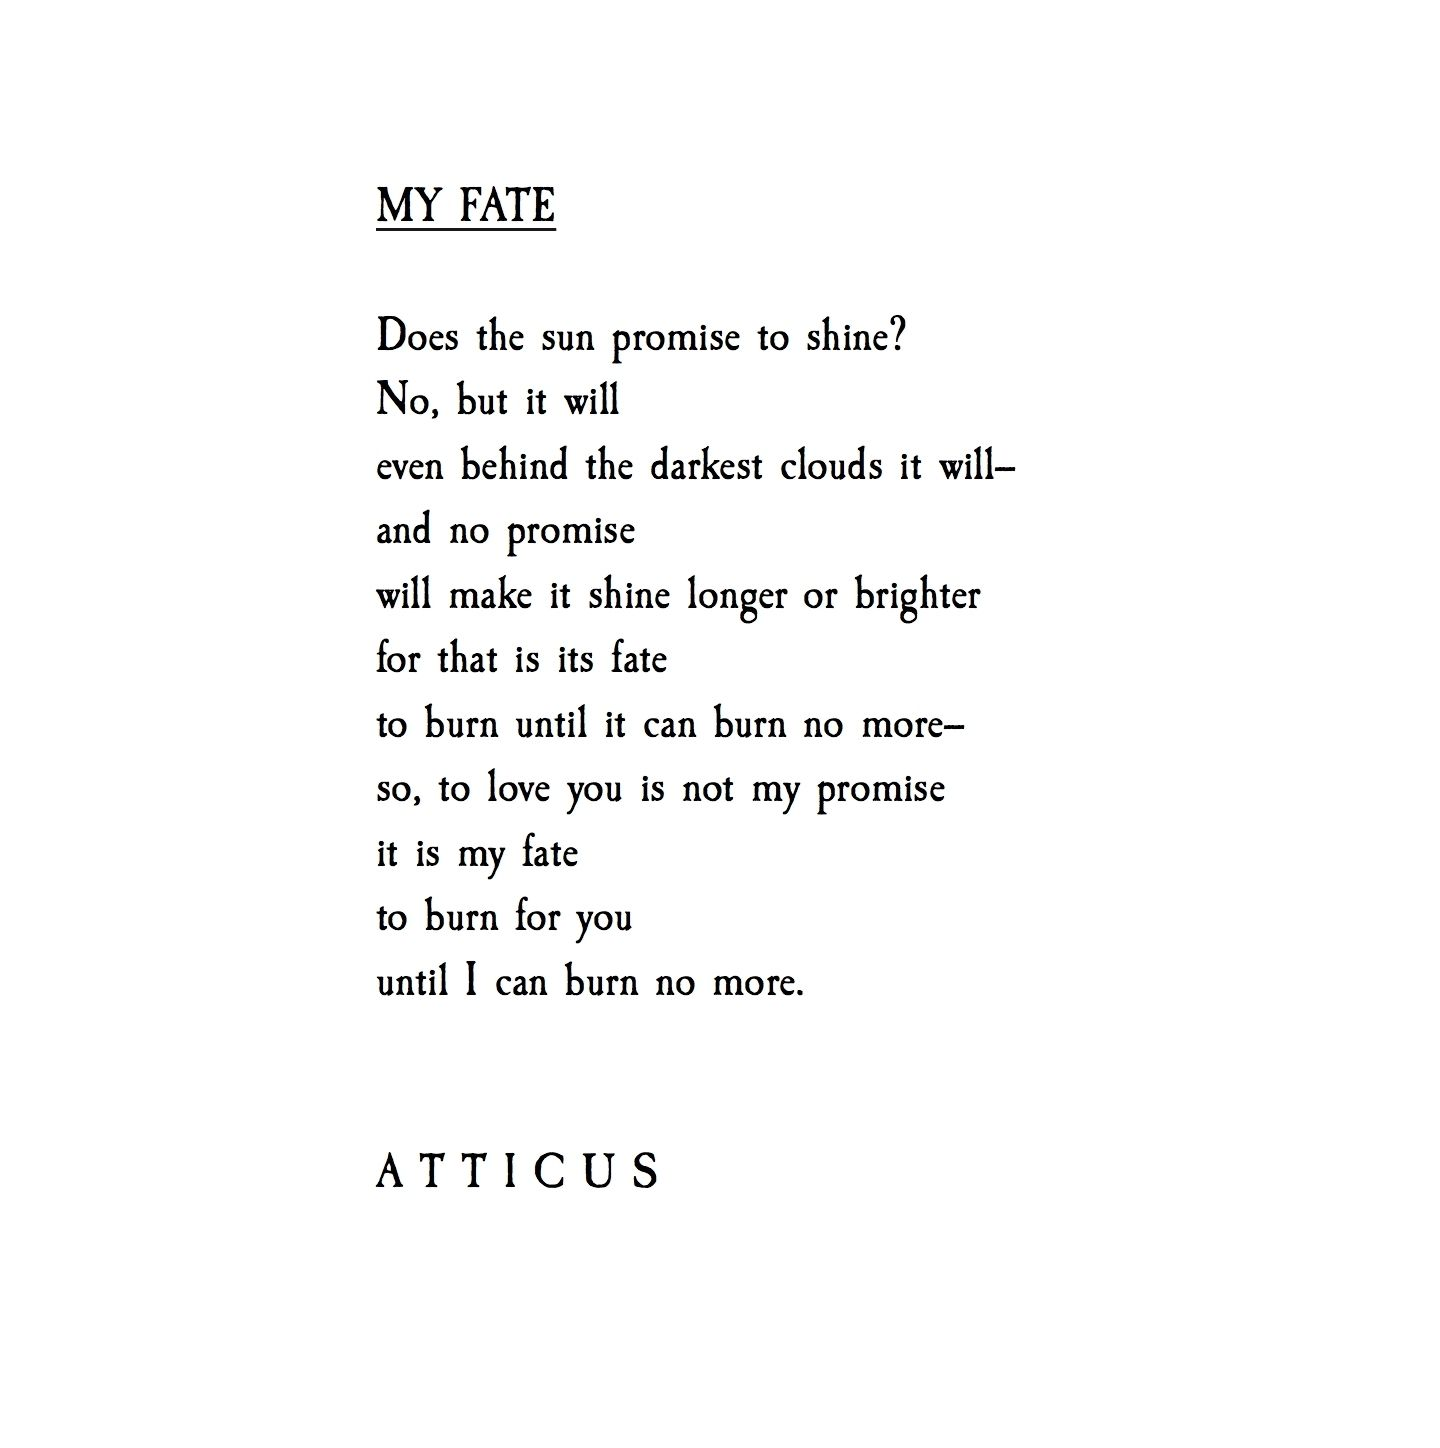 Quotes About True Love And Fate: 'My Fate' #atticuspoetry #loveherwild #fate